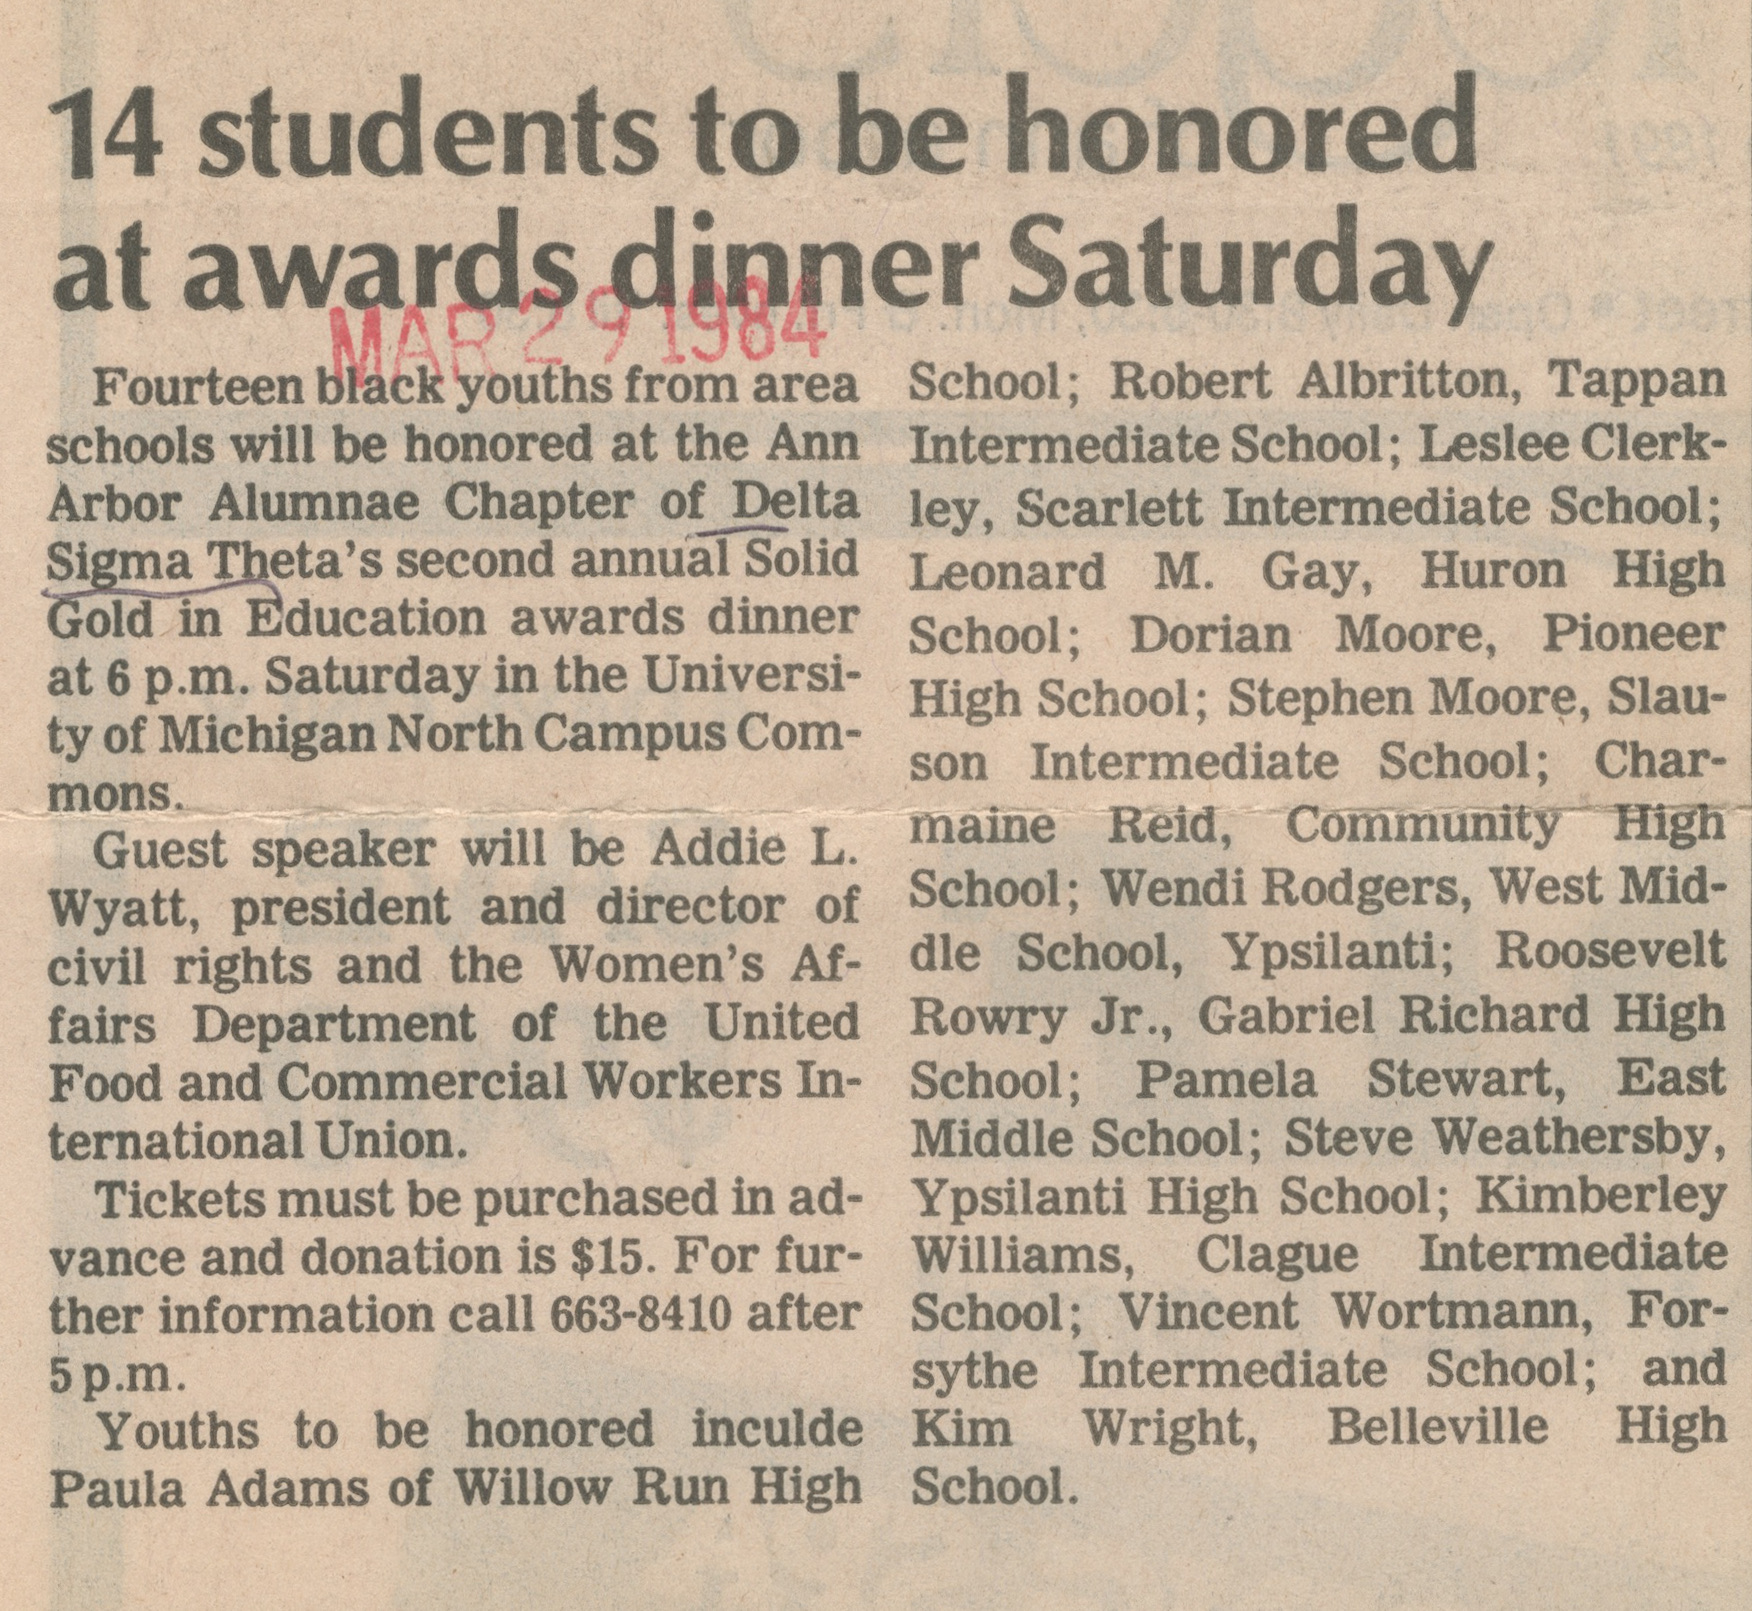 14 Students To Be Honored At Awards Dinner Saturday image